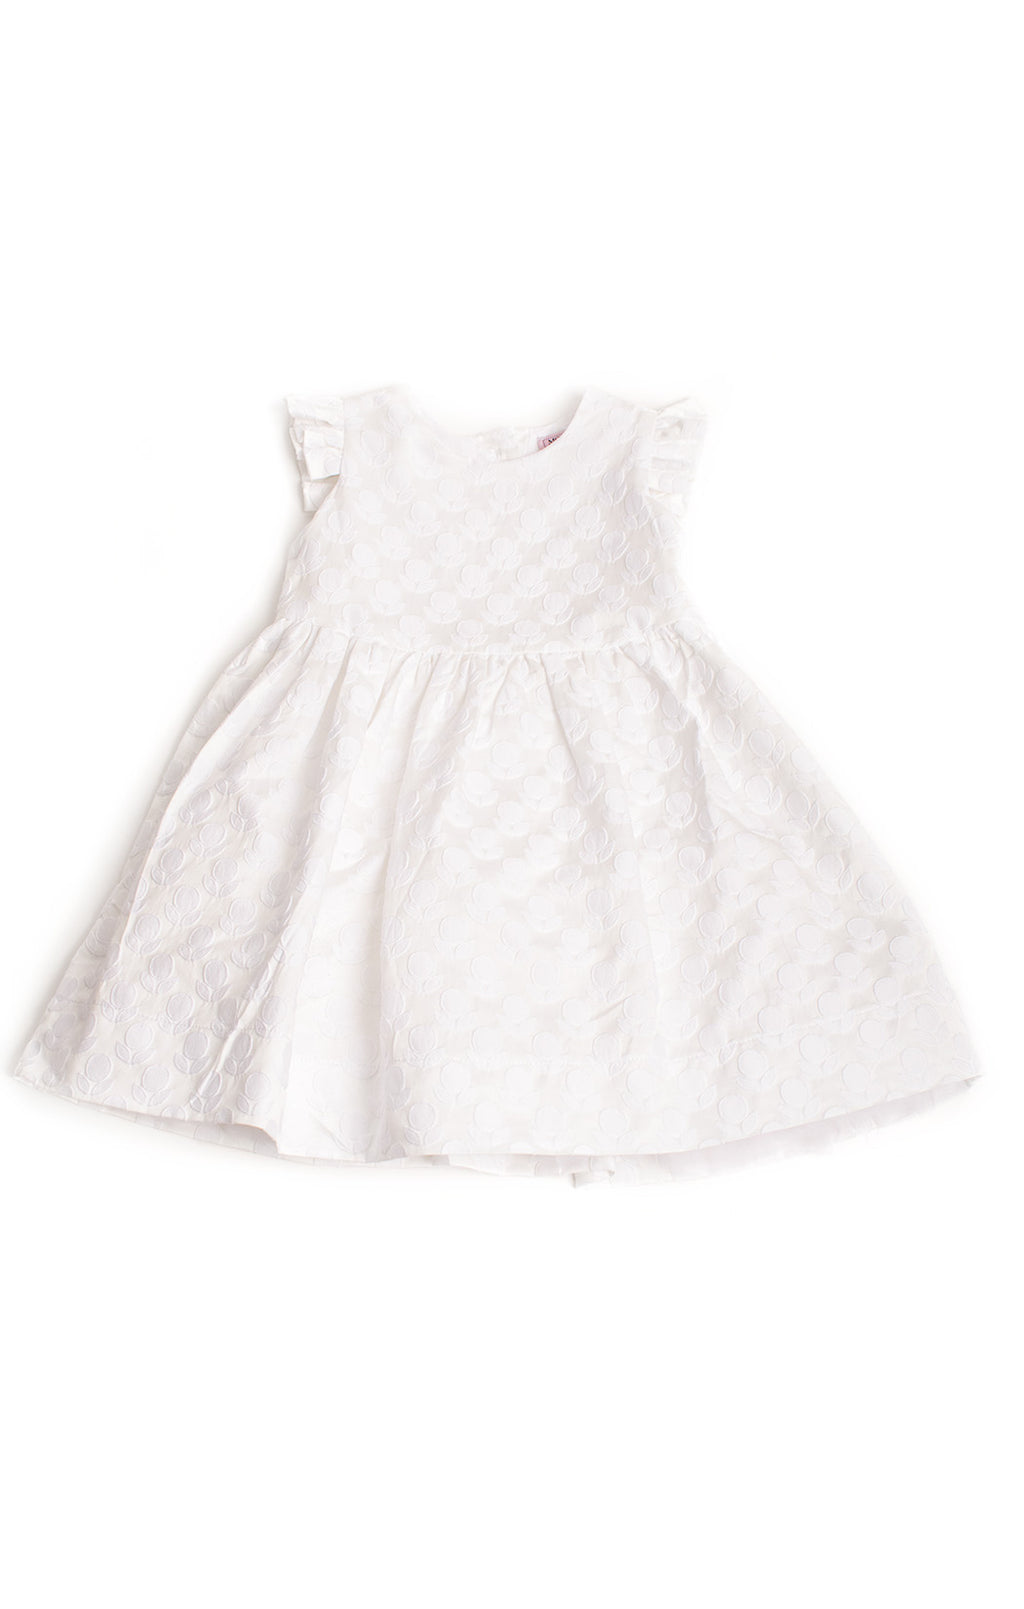 Front view of MONNALISA Dress Size: 24 months